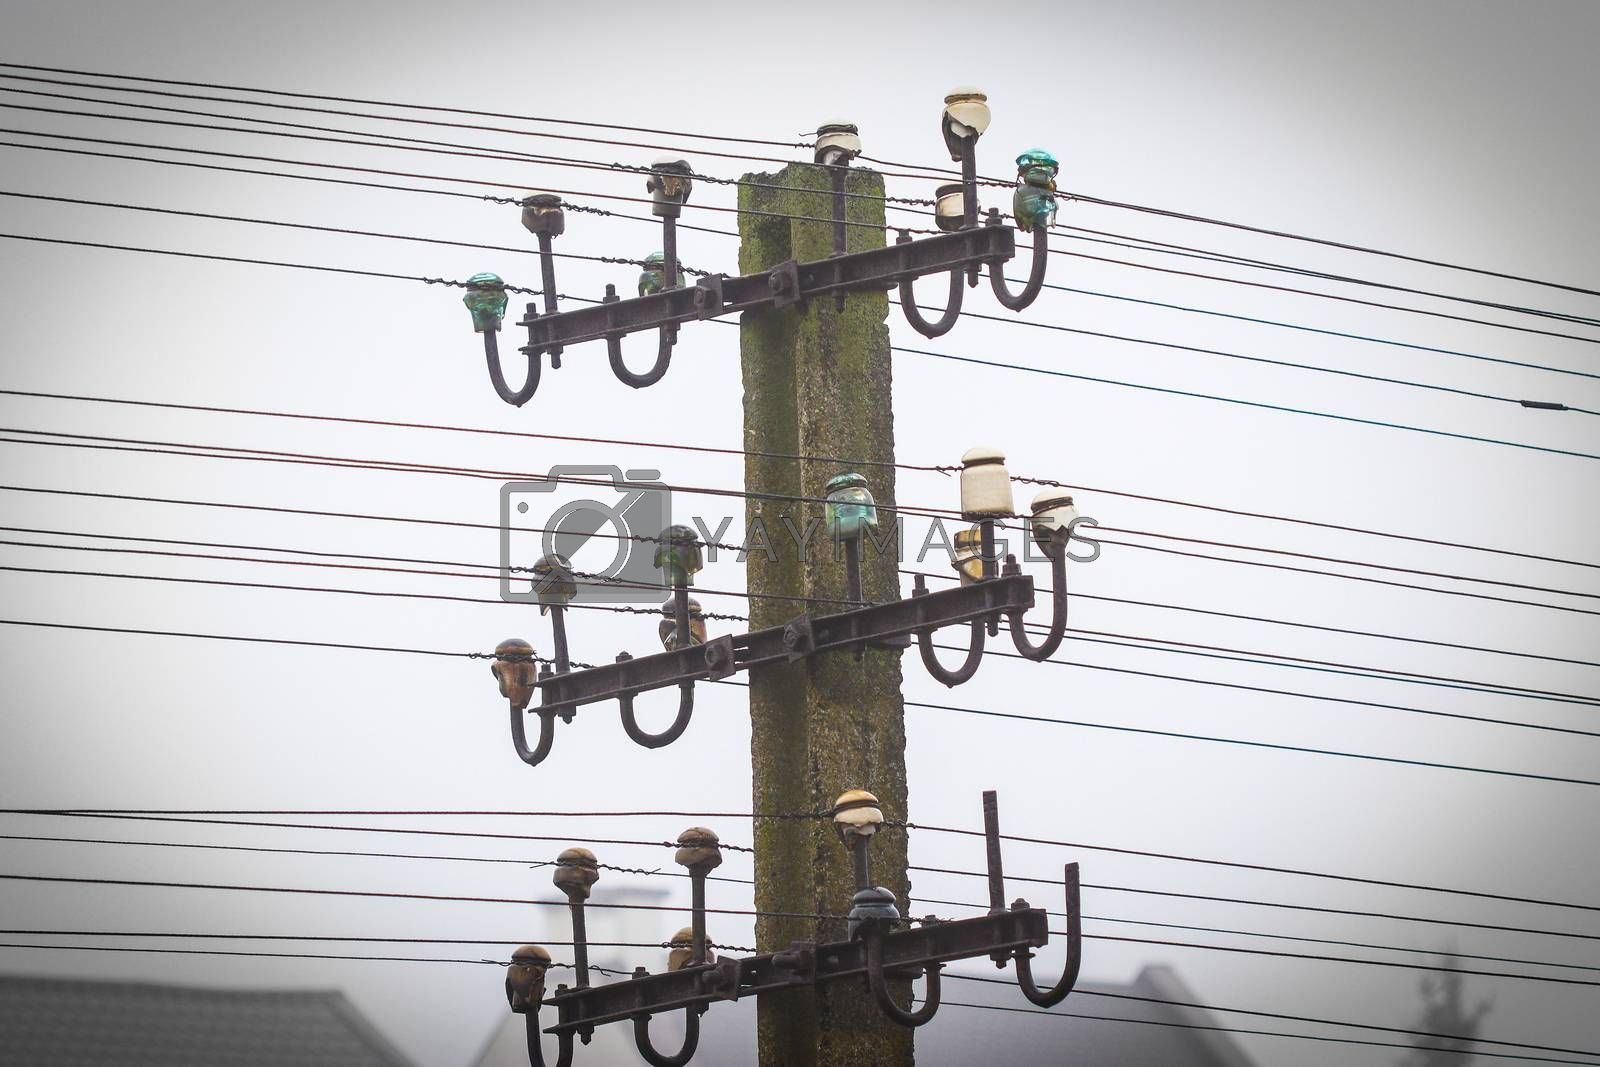 Concrete pole with old telegraph and telephon wired line with misty background